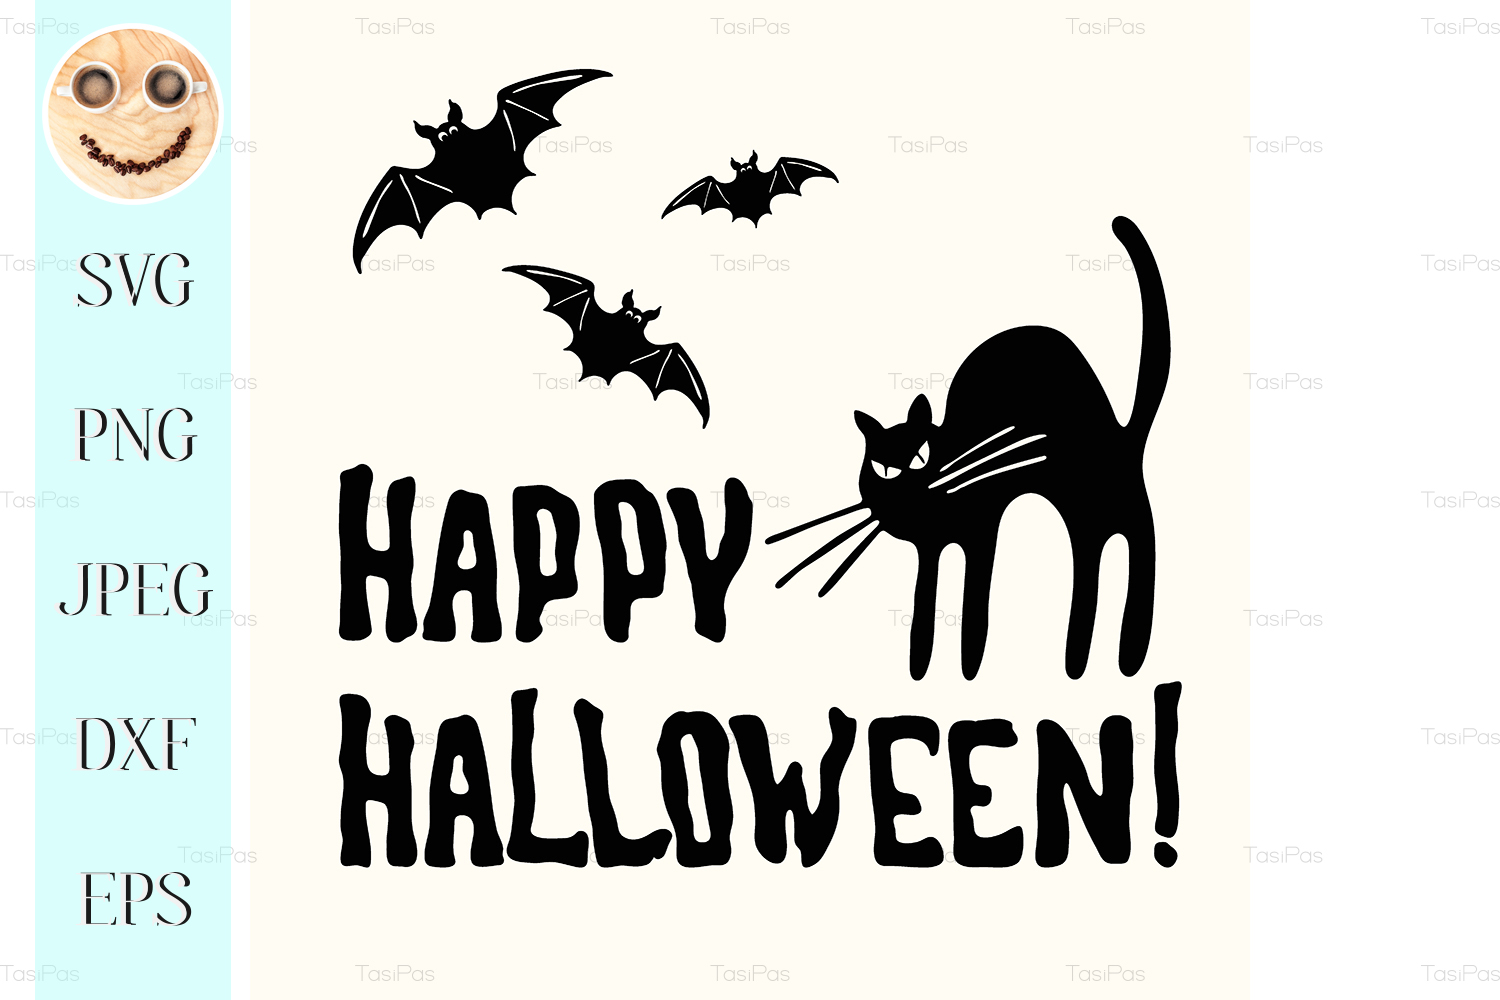 Download Free Happy Halloween Title Graphic By Tasipas Creative Fabrica for Cricut Explore, Silhouette and other cutting machines.